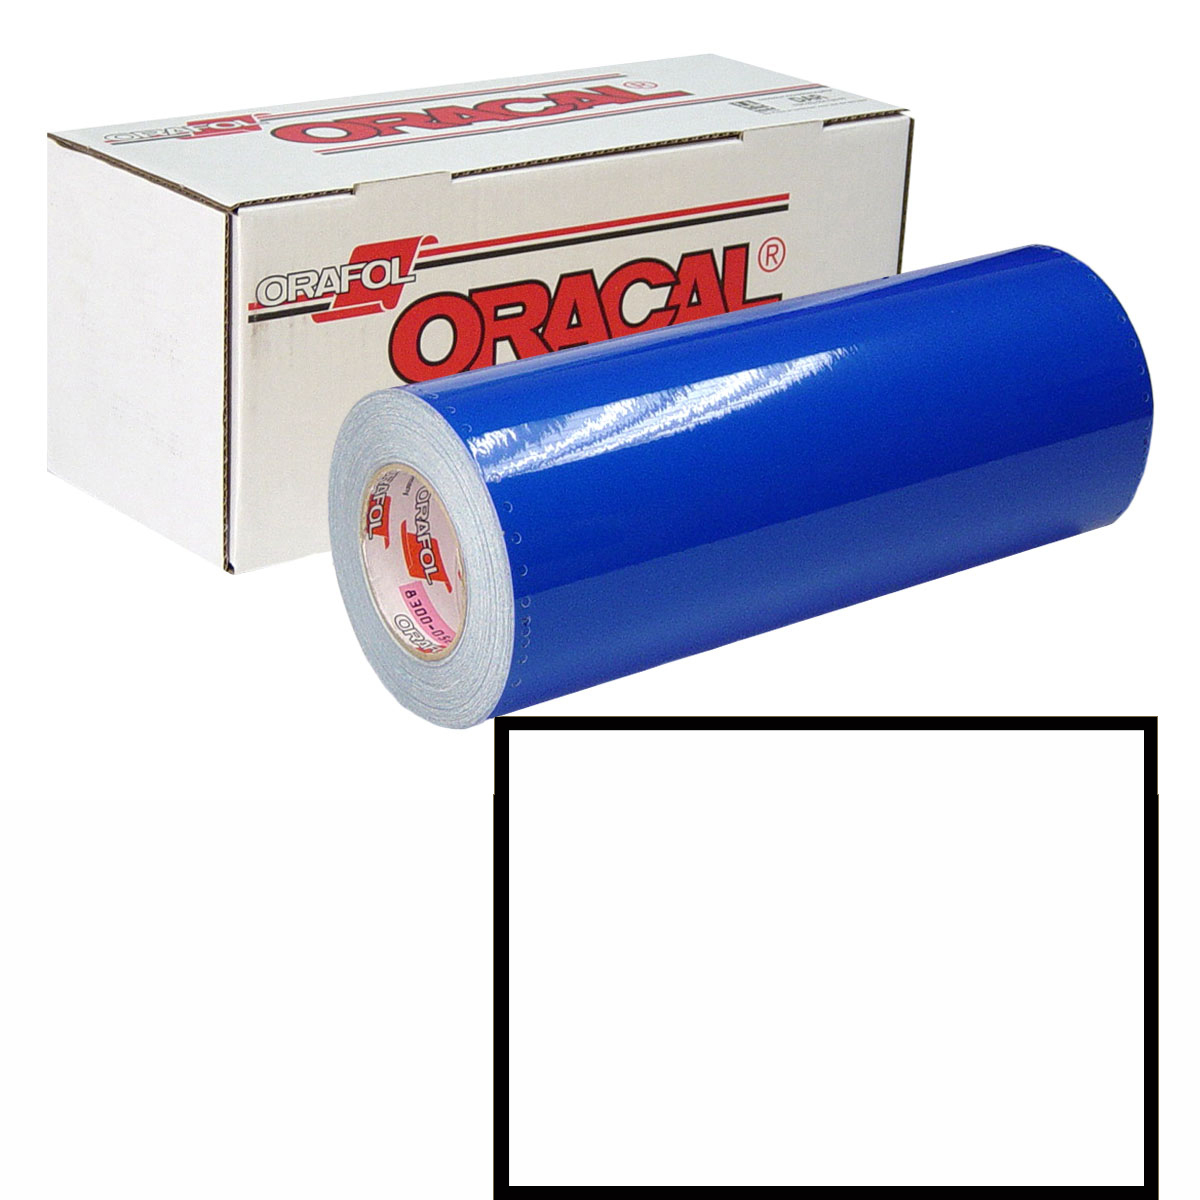 ORACAL 631 Unp 48In X 10Yd 000 Transparent